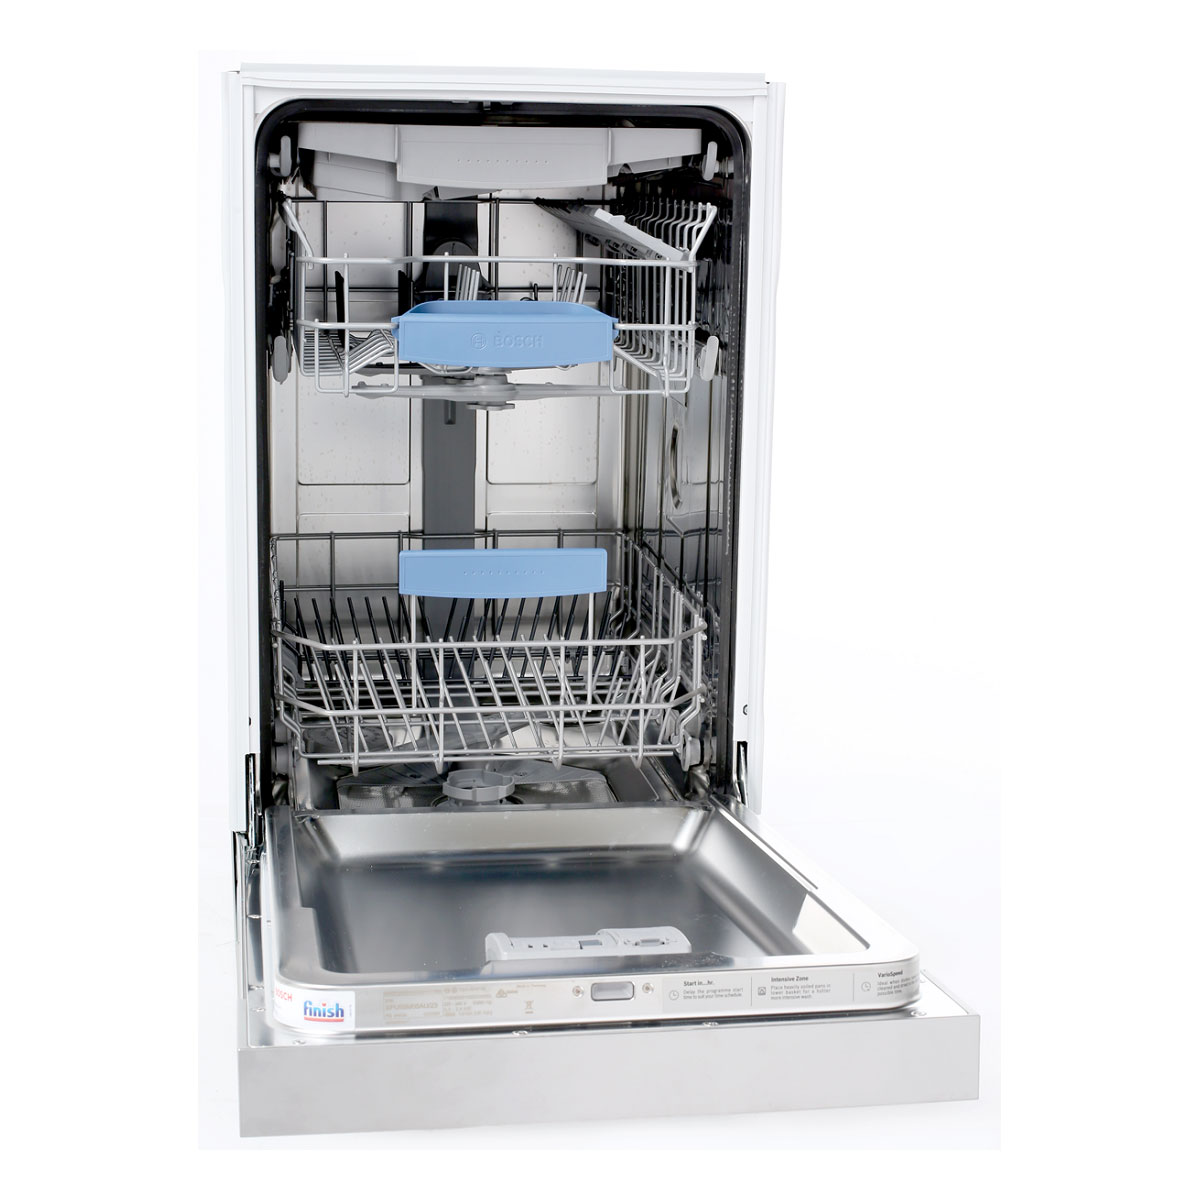 Bosch SPU68M05AU Slimline Under Bench Dishwasher